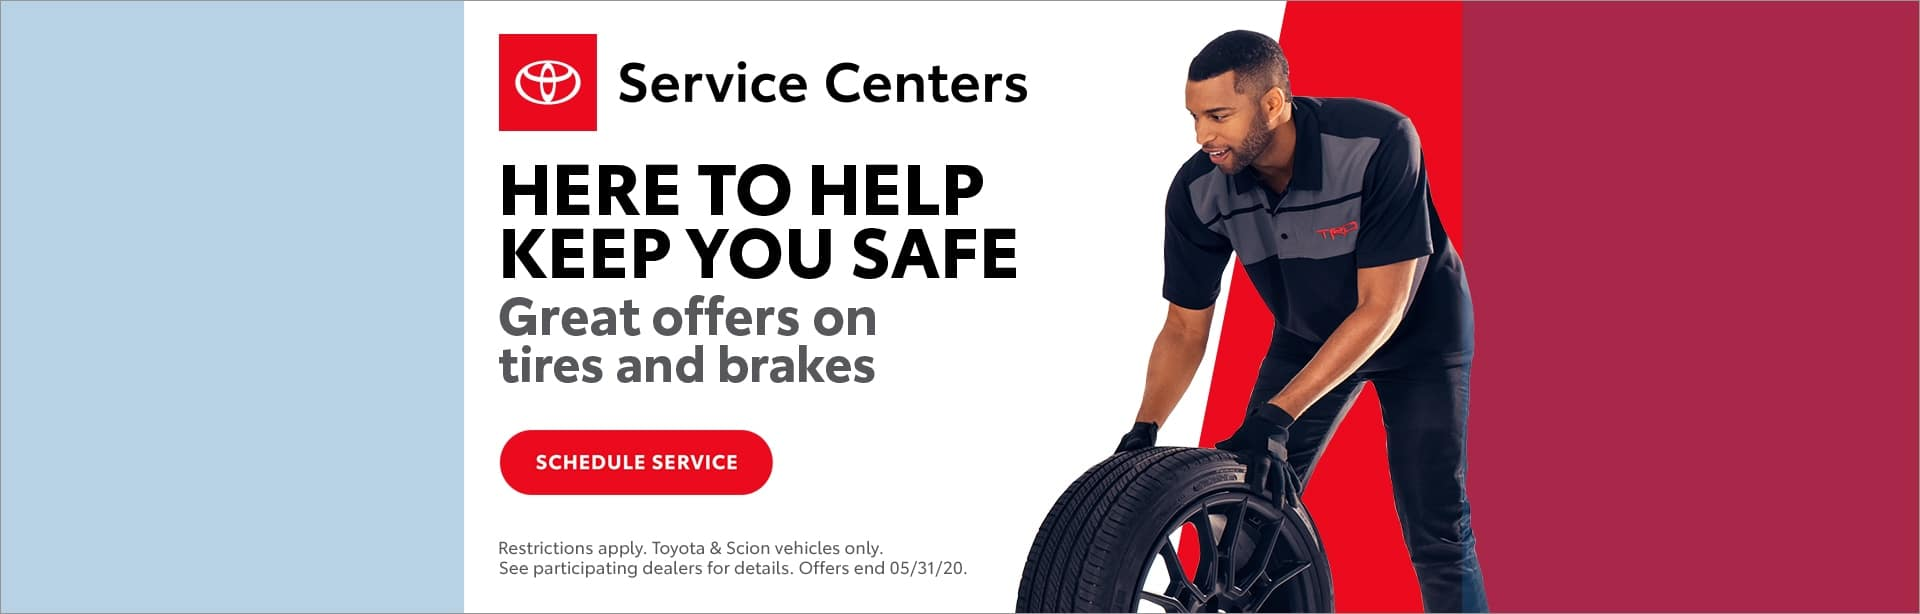 Toyota of Merrilville Tires and Brakes Offers